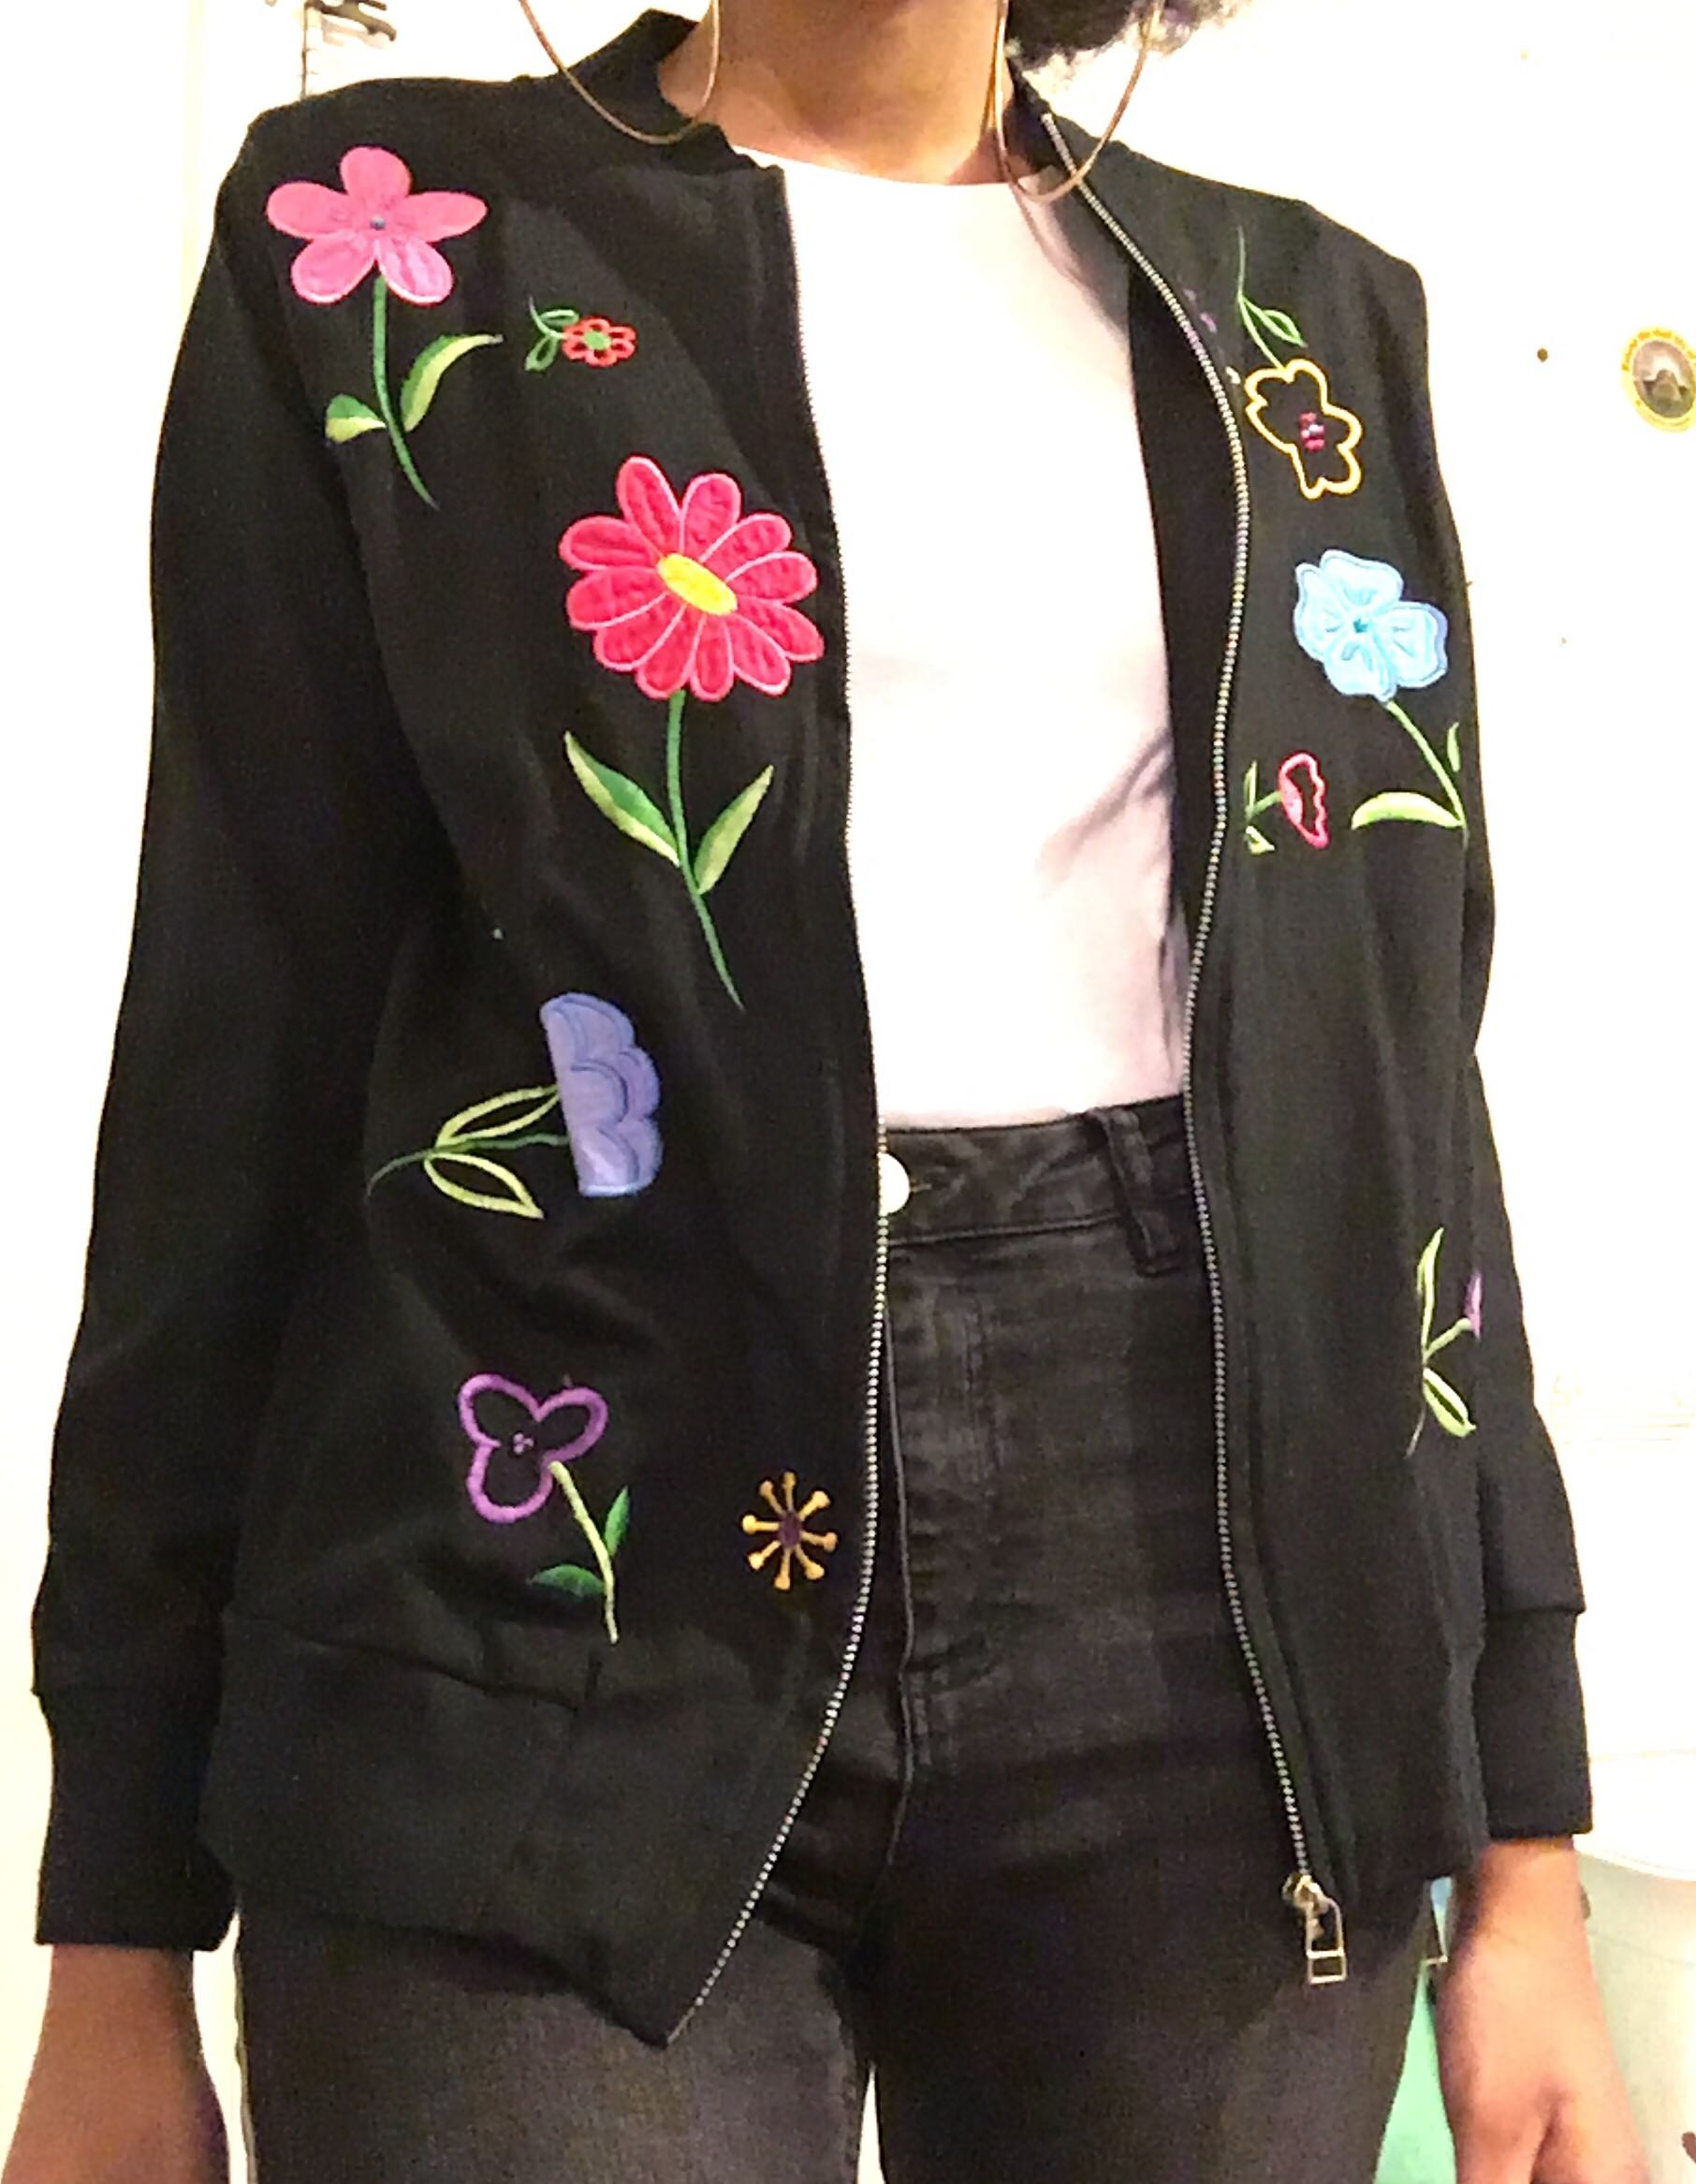 Black Jacket w/ Flower Patches